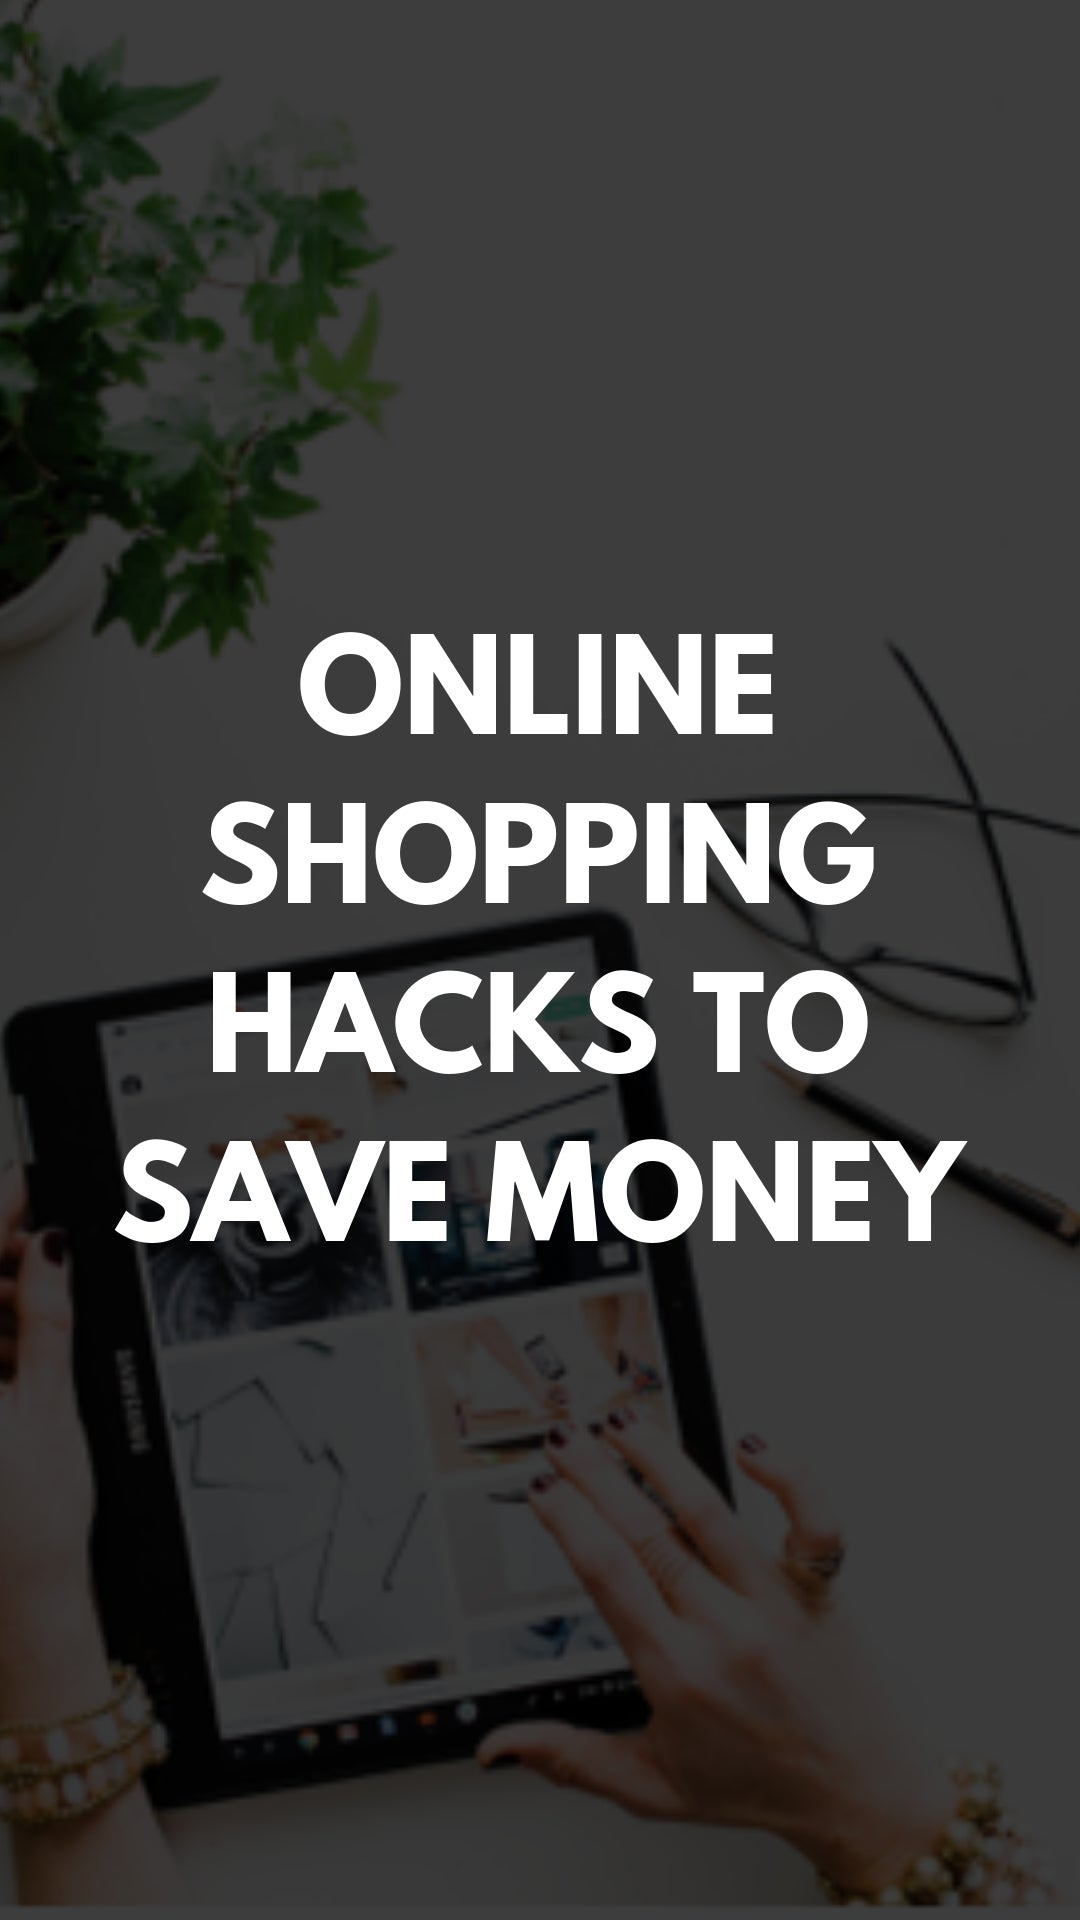 Online Shopping Hacks: How Fashion Editors Make Bargains Online